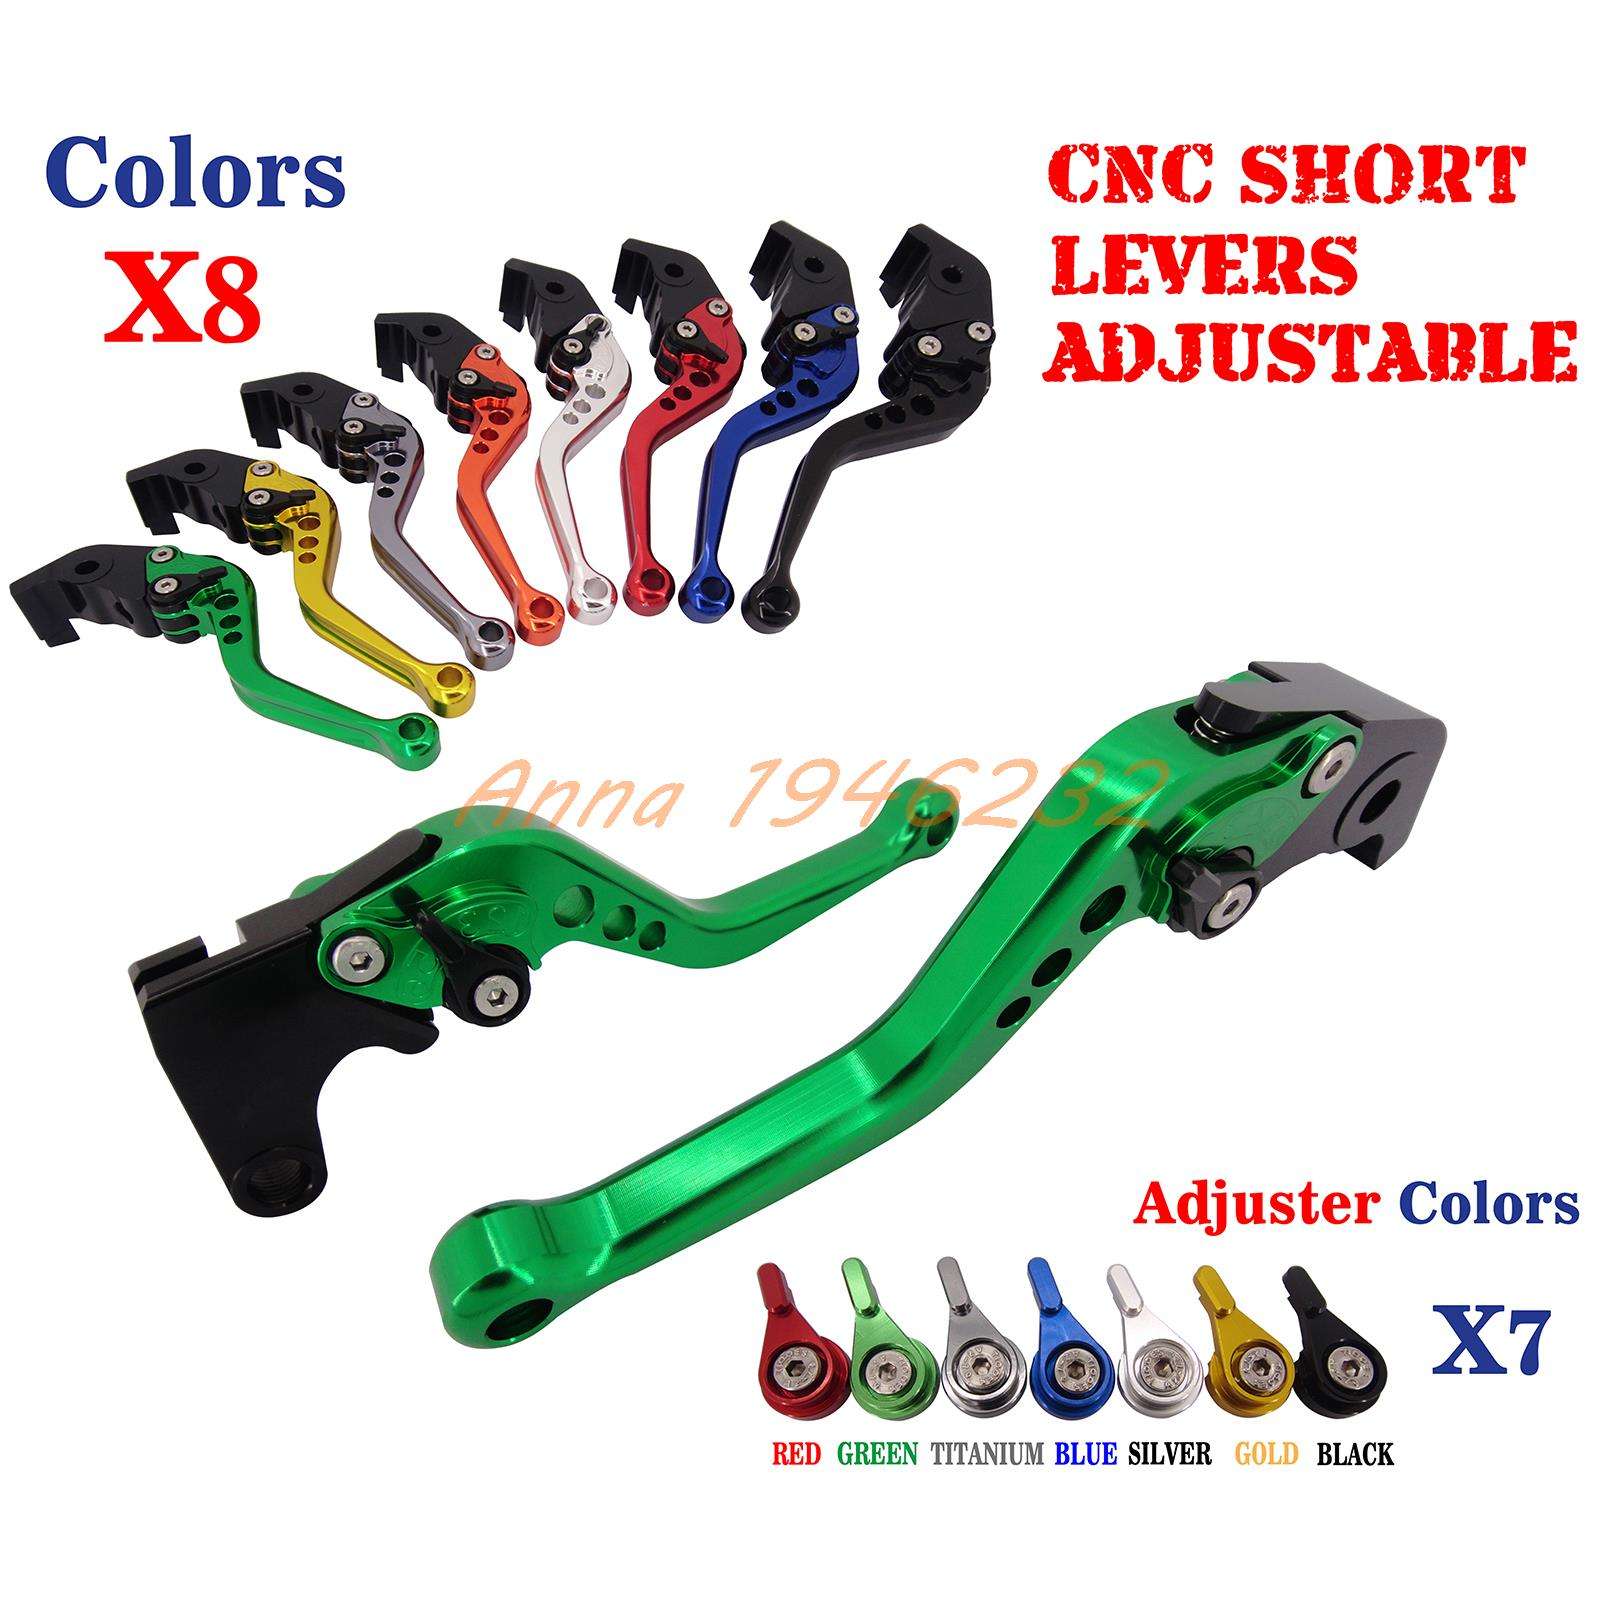 Motorcycle CNC Short Adjustable Brake Clutch Levers For Kawasaki  Z800/E version 2013 2014 Z750 (not Z750S model) 2007-2012 adjustable new cnc billet short fold folding brake clutch levers for kawasaki z750 z 750 07 12 08 09 10 11 z800 z 800 13 15 2014